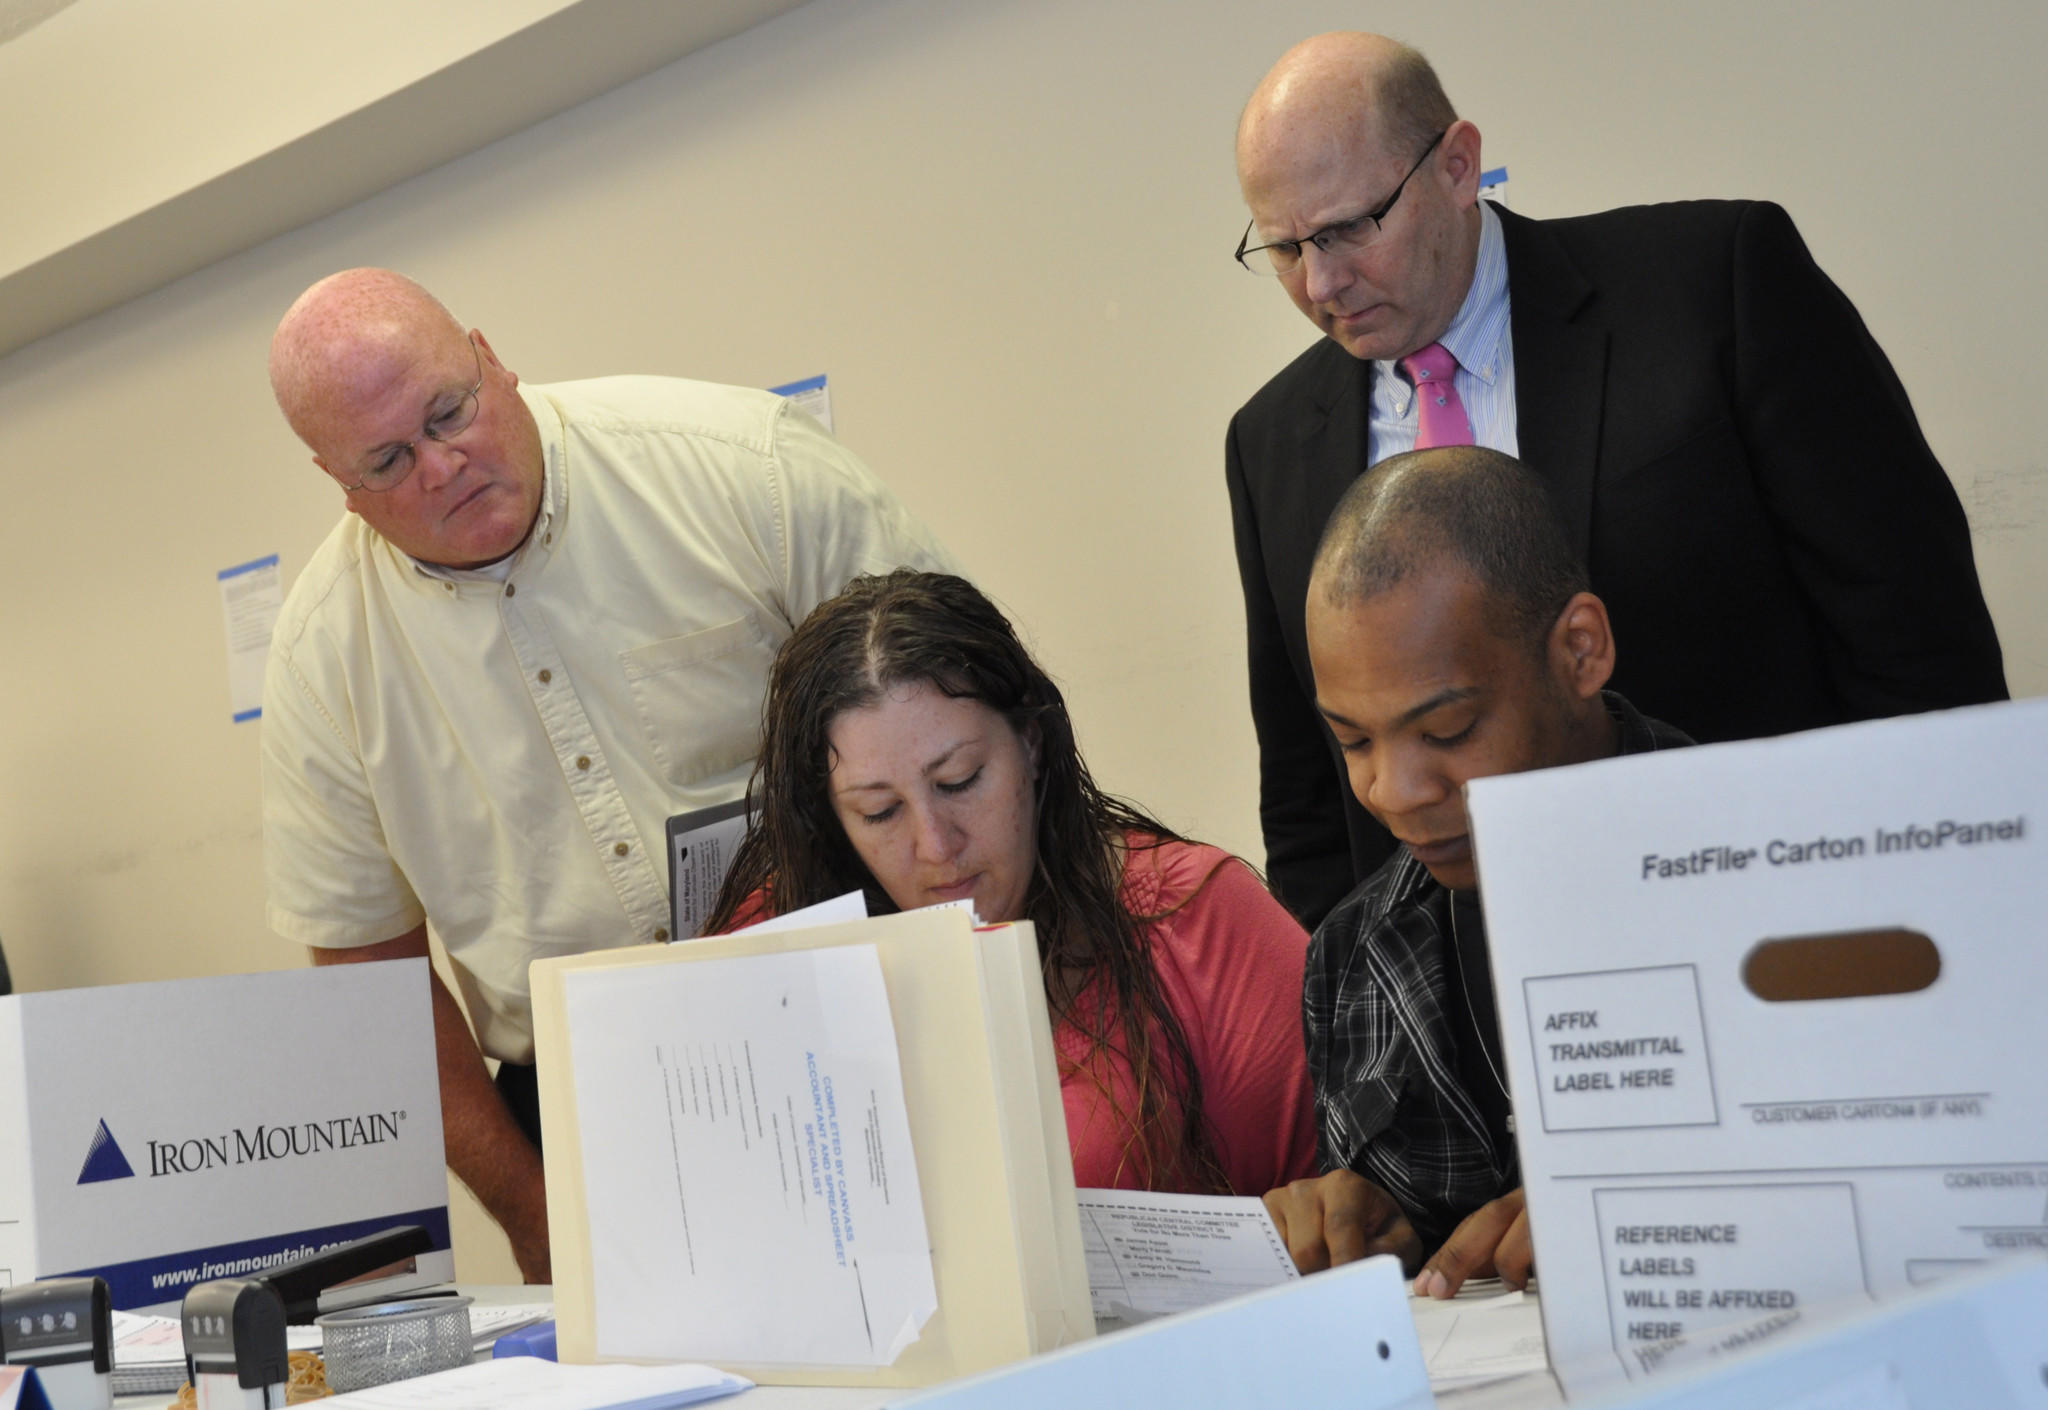 Anne Arundel County election judges Erin Treadaway, left, and Chris Singleton process absentee ballots in Glen Burnie Thursday morning. Observing the process are Phil Reeder, left, a supporter of County Council candidate Michael Anthony Peroutka, and Lawrence Scott, a consultant for Republican county executive nominee Steve Schuh. Peroutka was holding on to a slim lead over Maureen Carr-York in the Republican primary for County Council representing the Severna Park and Broadneck area.